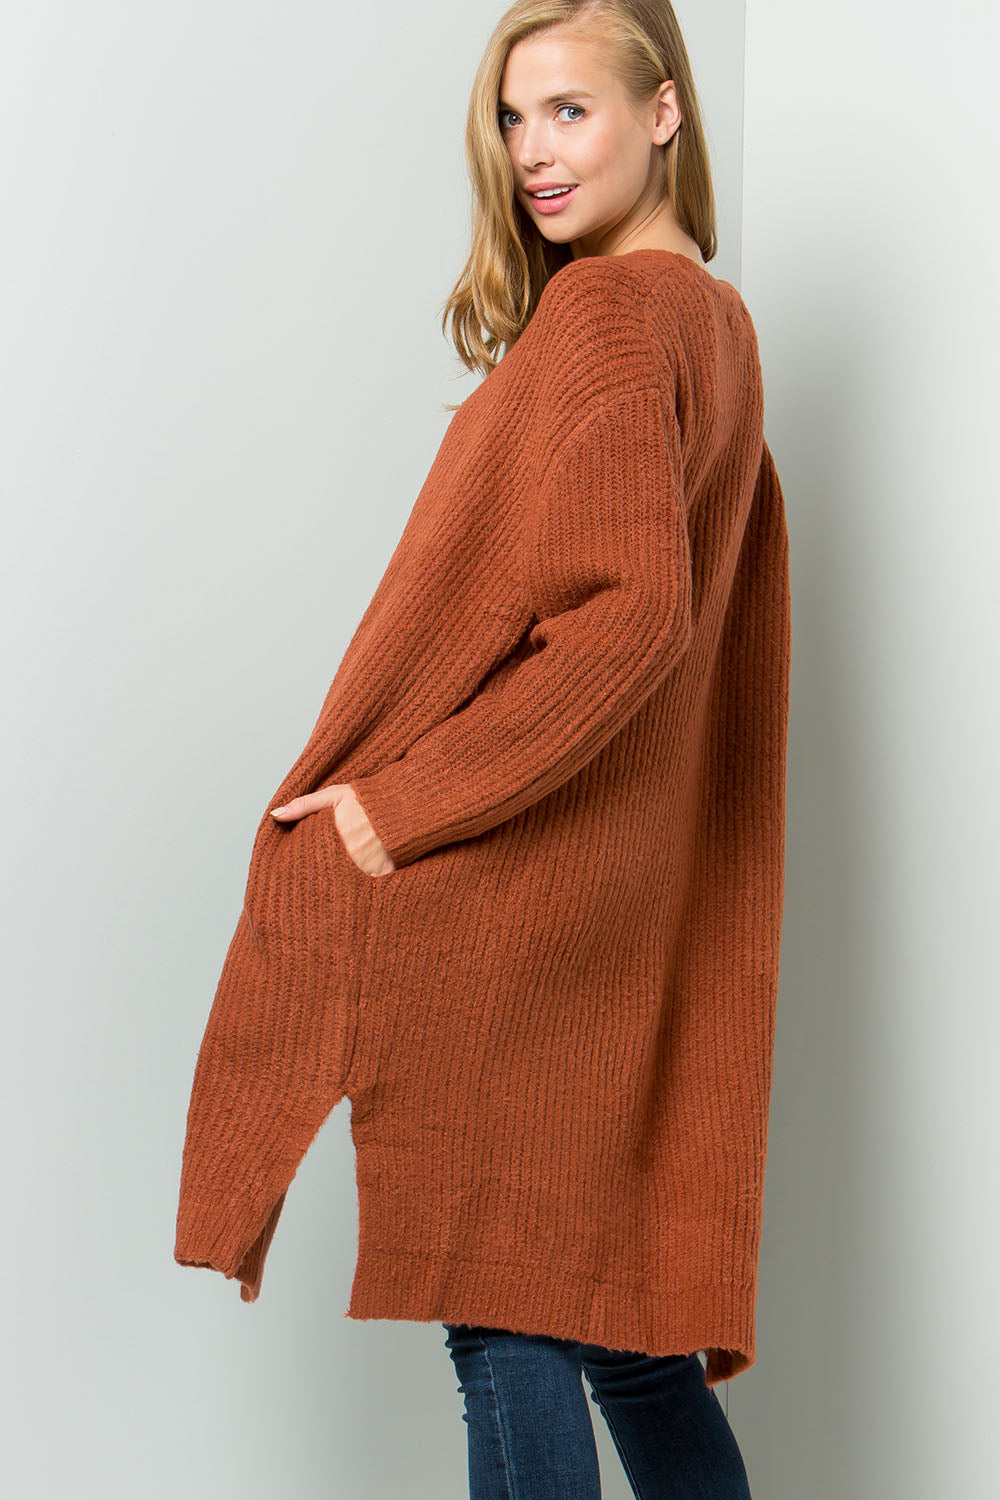 Oversized chunky mohair long cardigan-spice